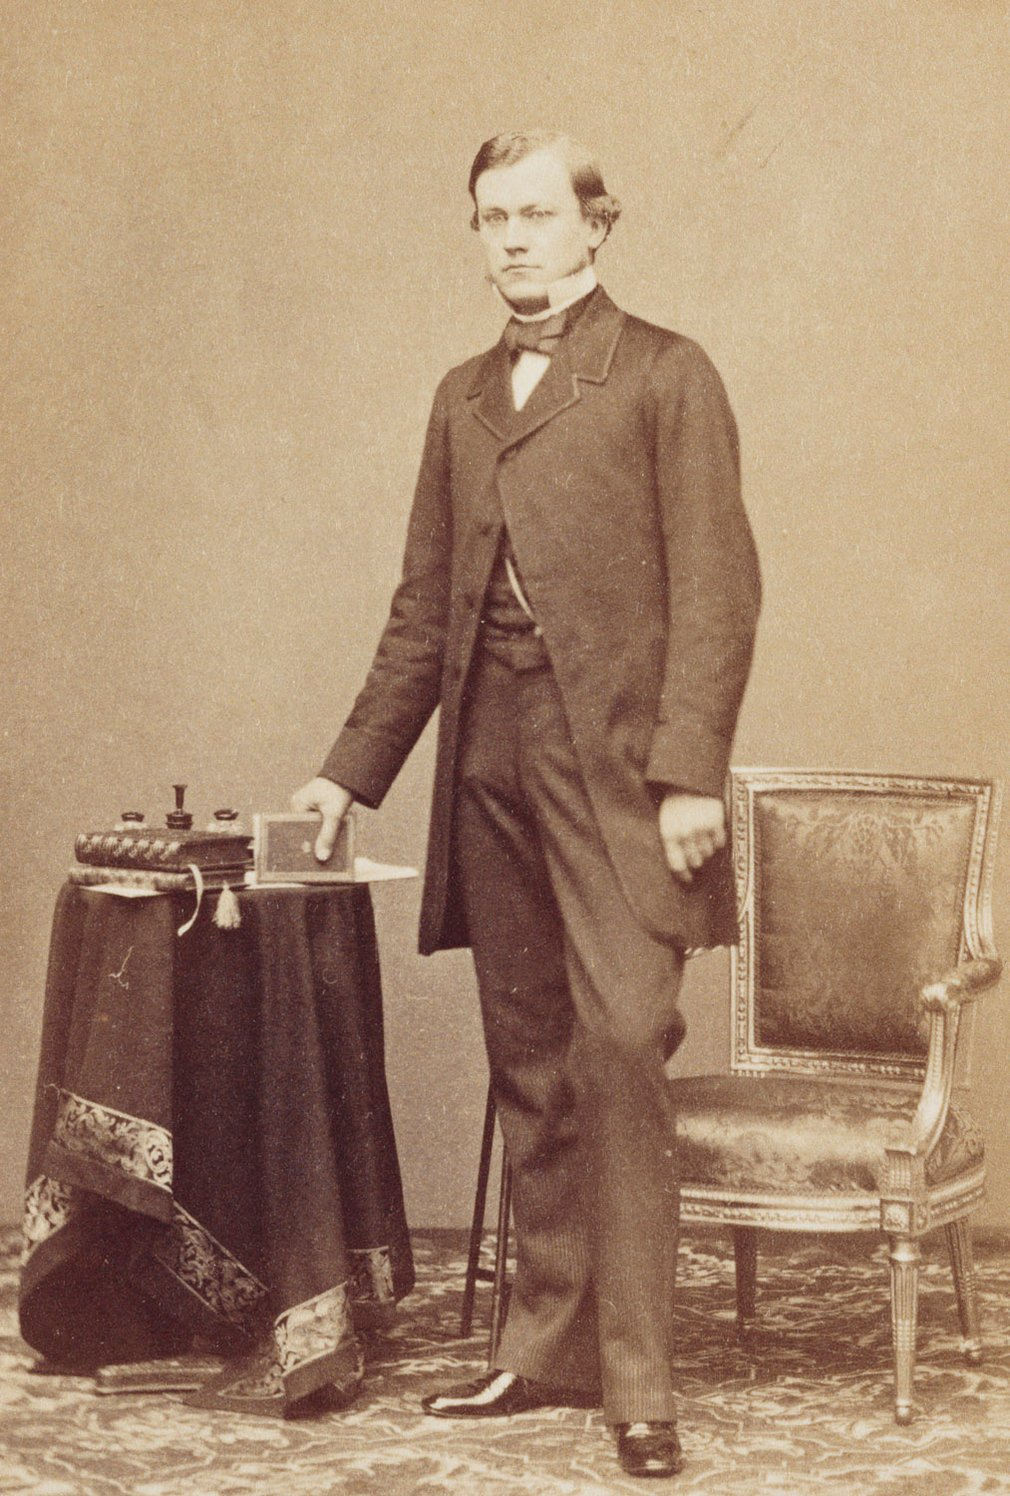 Photograph of Carl Ruland, standing beside a chair, holding a book in his right hand, looking at the camera. He was an art and literary historian; Private secretary to Prince Albert and assisted with the Raphael Project.